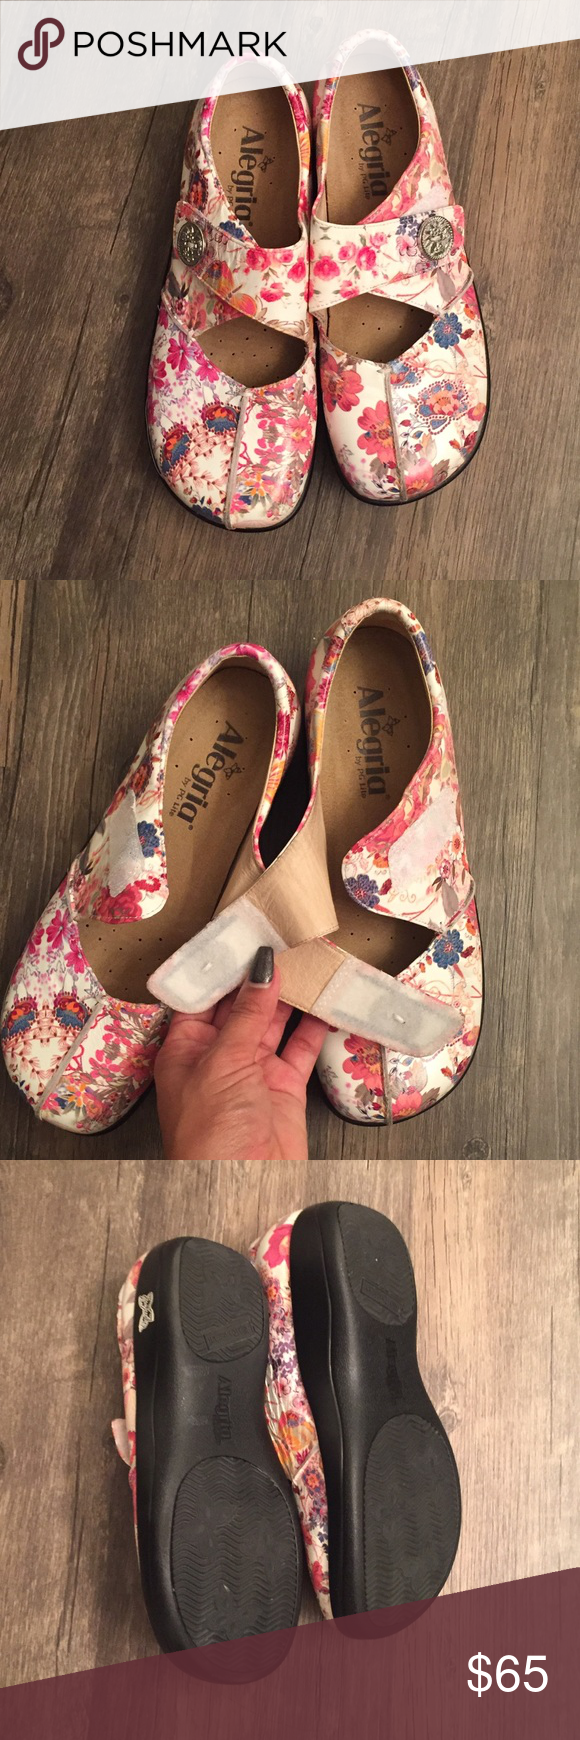 38 Floral like New Algeria Mary Jane work shoe 38 Floral like  New Algeria Mary Jane work Shoe. New with out box or tags. Alegria Shoes